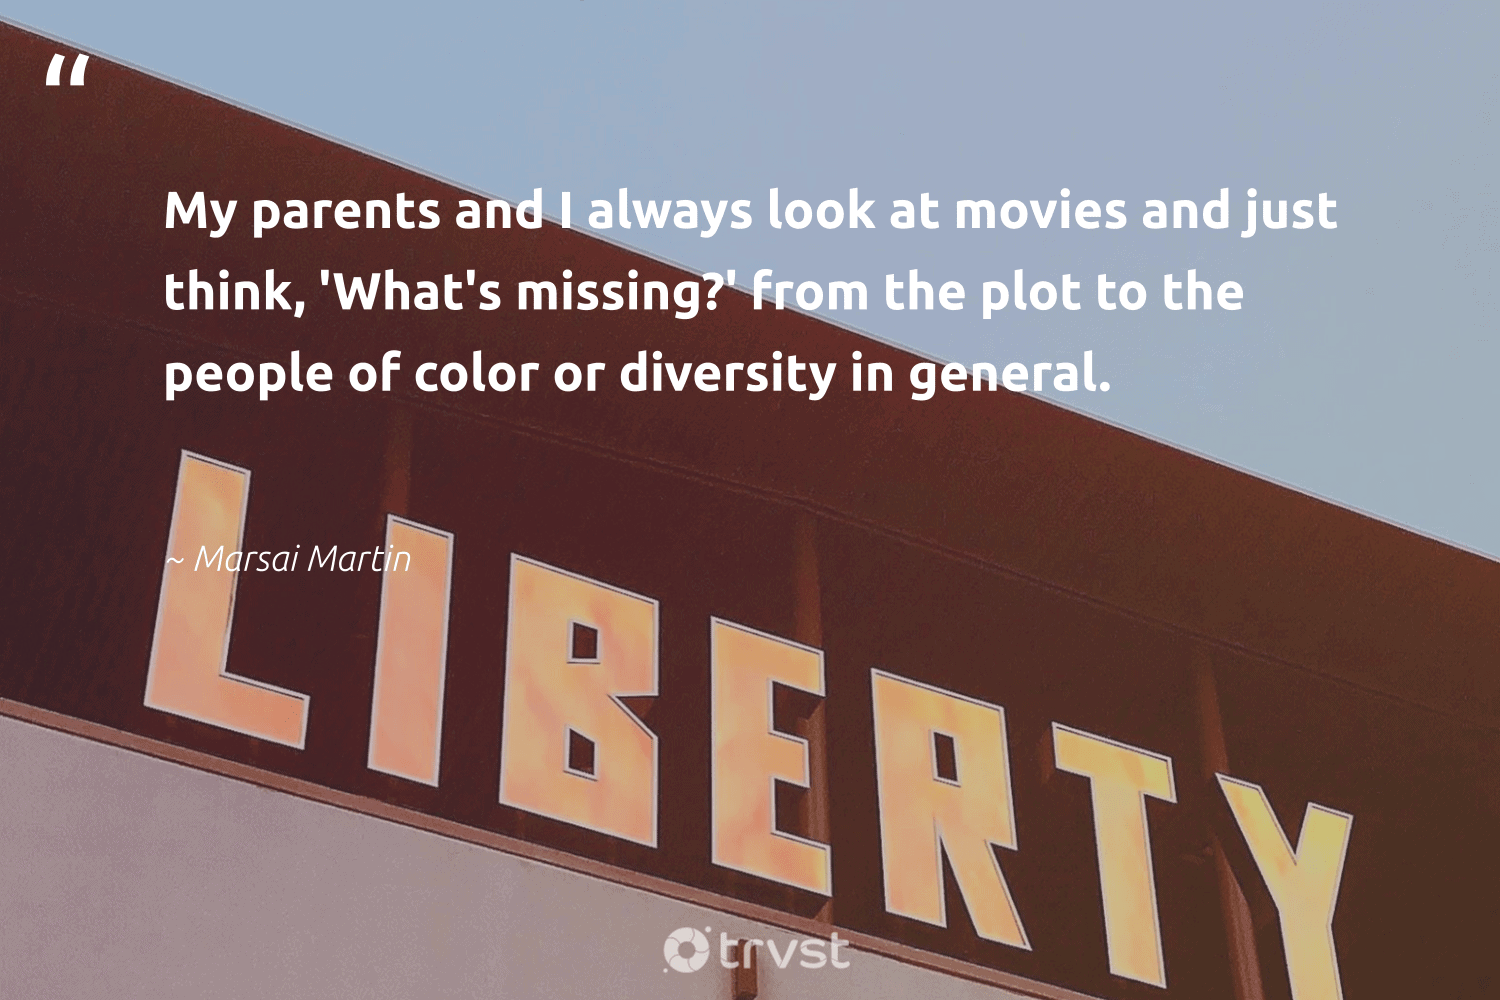 """""""My parents and I always look at movies and just think, 'What's missing?' from the plot to the people of color or diversity in general.""""  - Marsai Martin #trvst #quotes #diversity #peopleofcolor #discrimination #inclusion #makeadifference #socialgood #bethechange #representationmatters #socialchange #weareallone"""